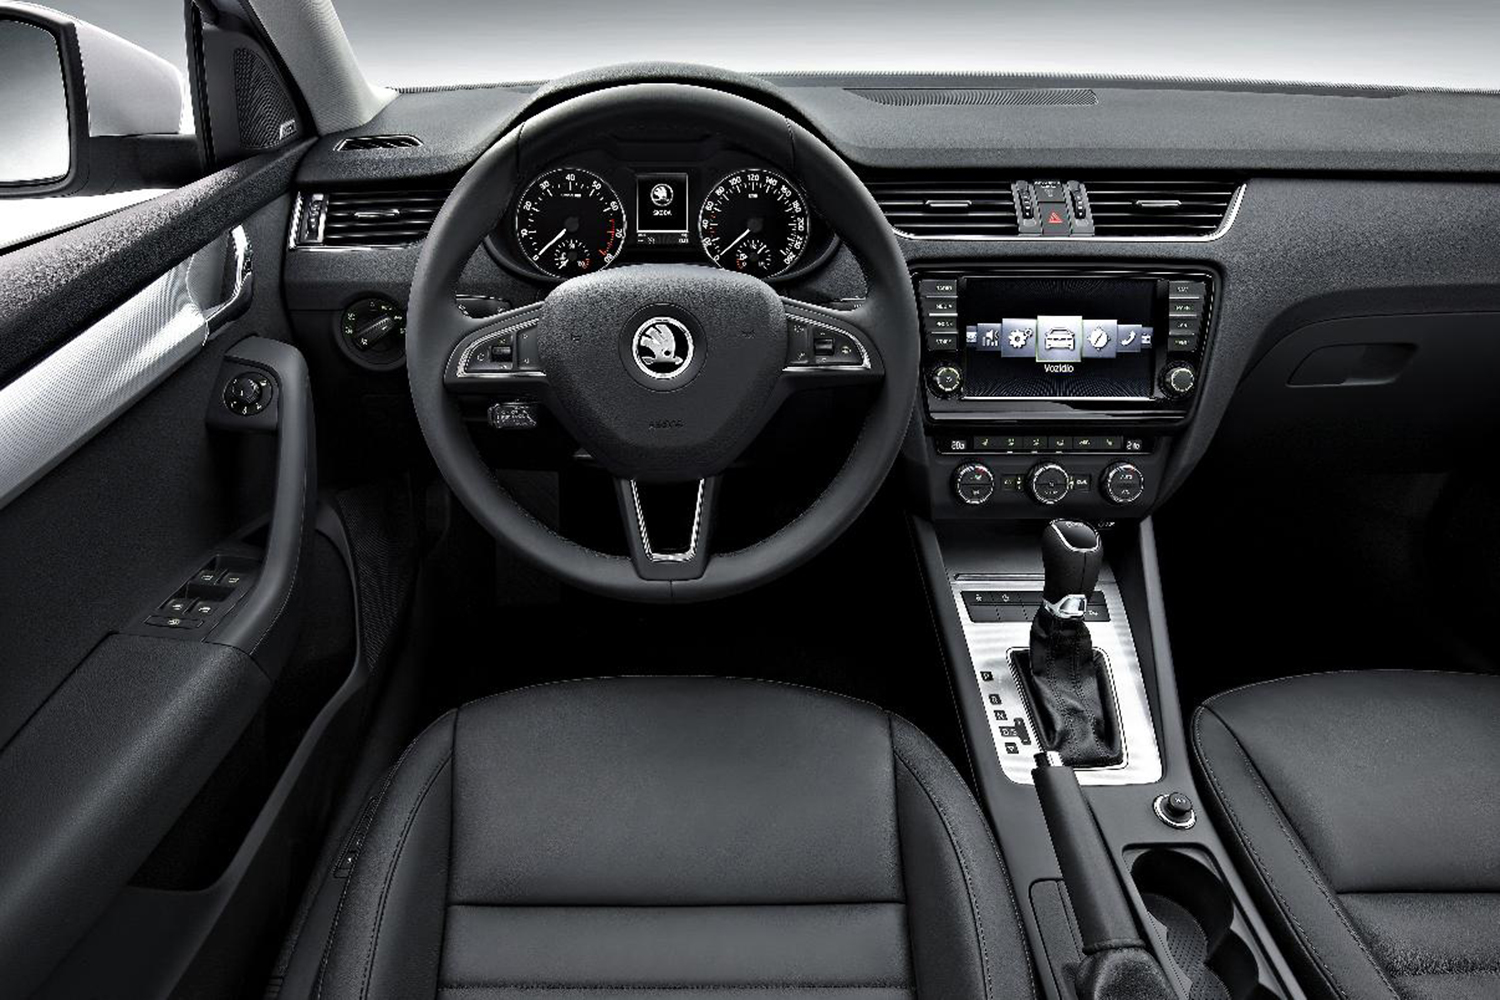 Cruise Control Should Not Be Used >> Skôda Octavia 2.0 TSI vRS Estate Automatic Review